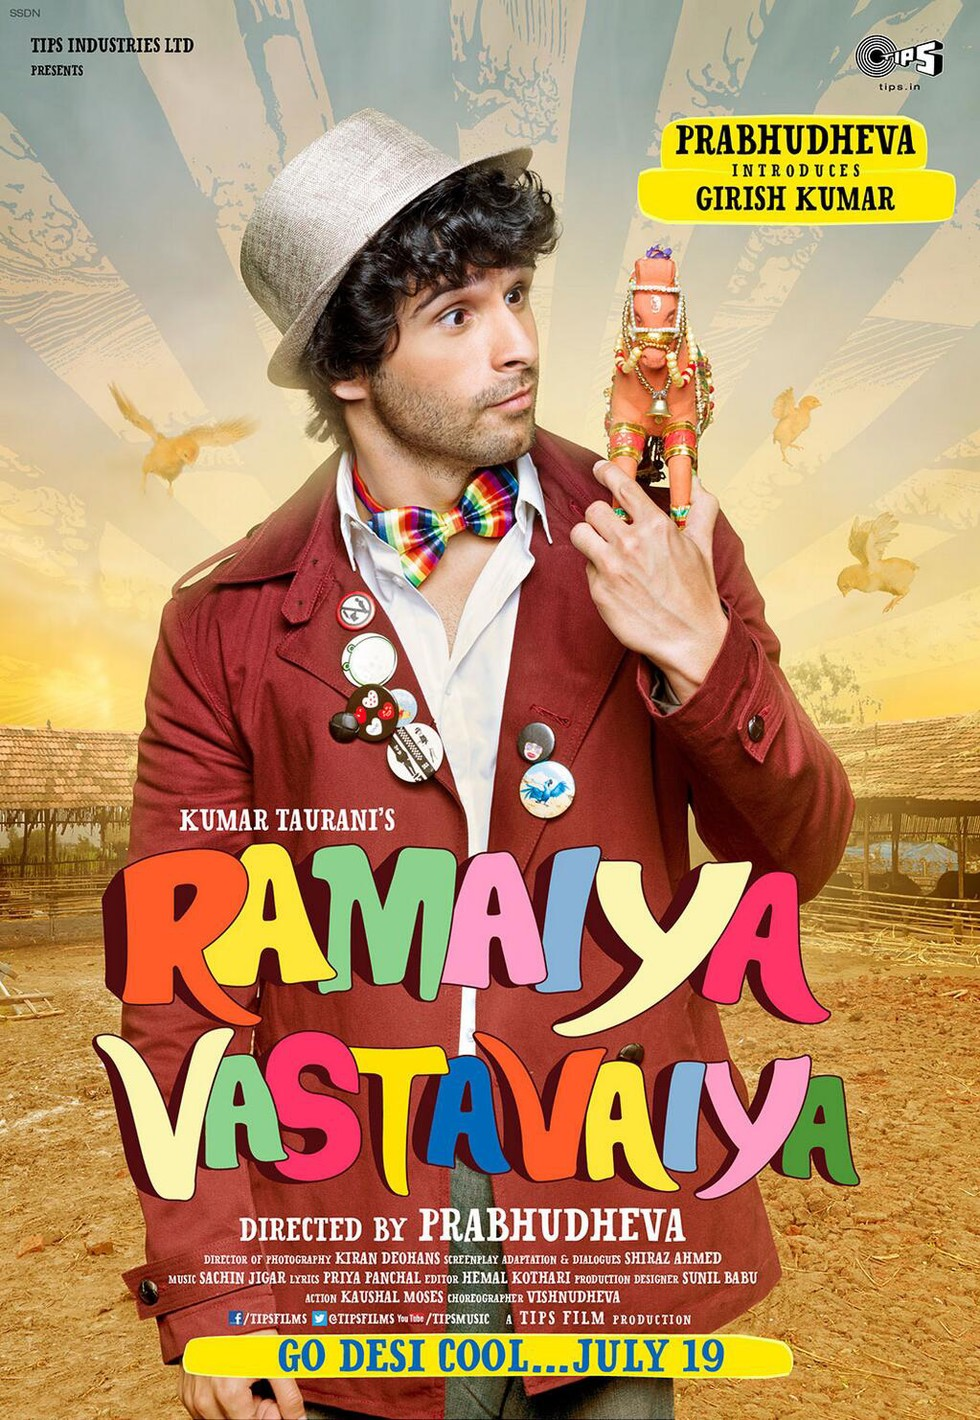 ramaiya vastavaiya - movie poster #12 (large) - funrahi